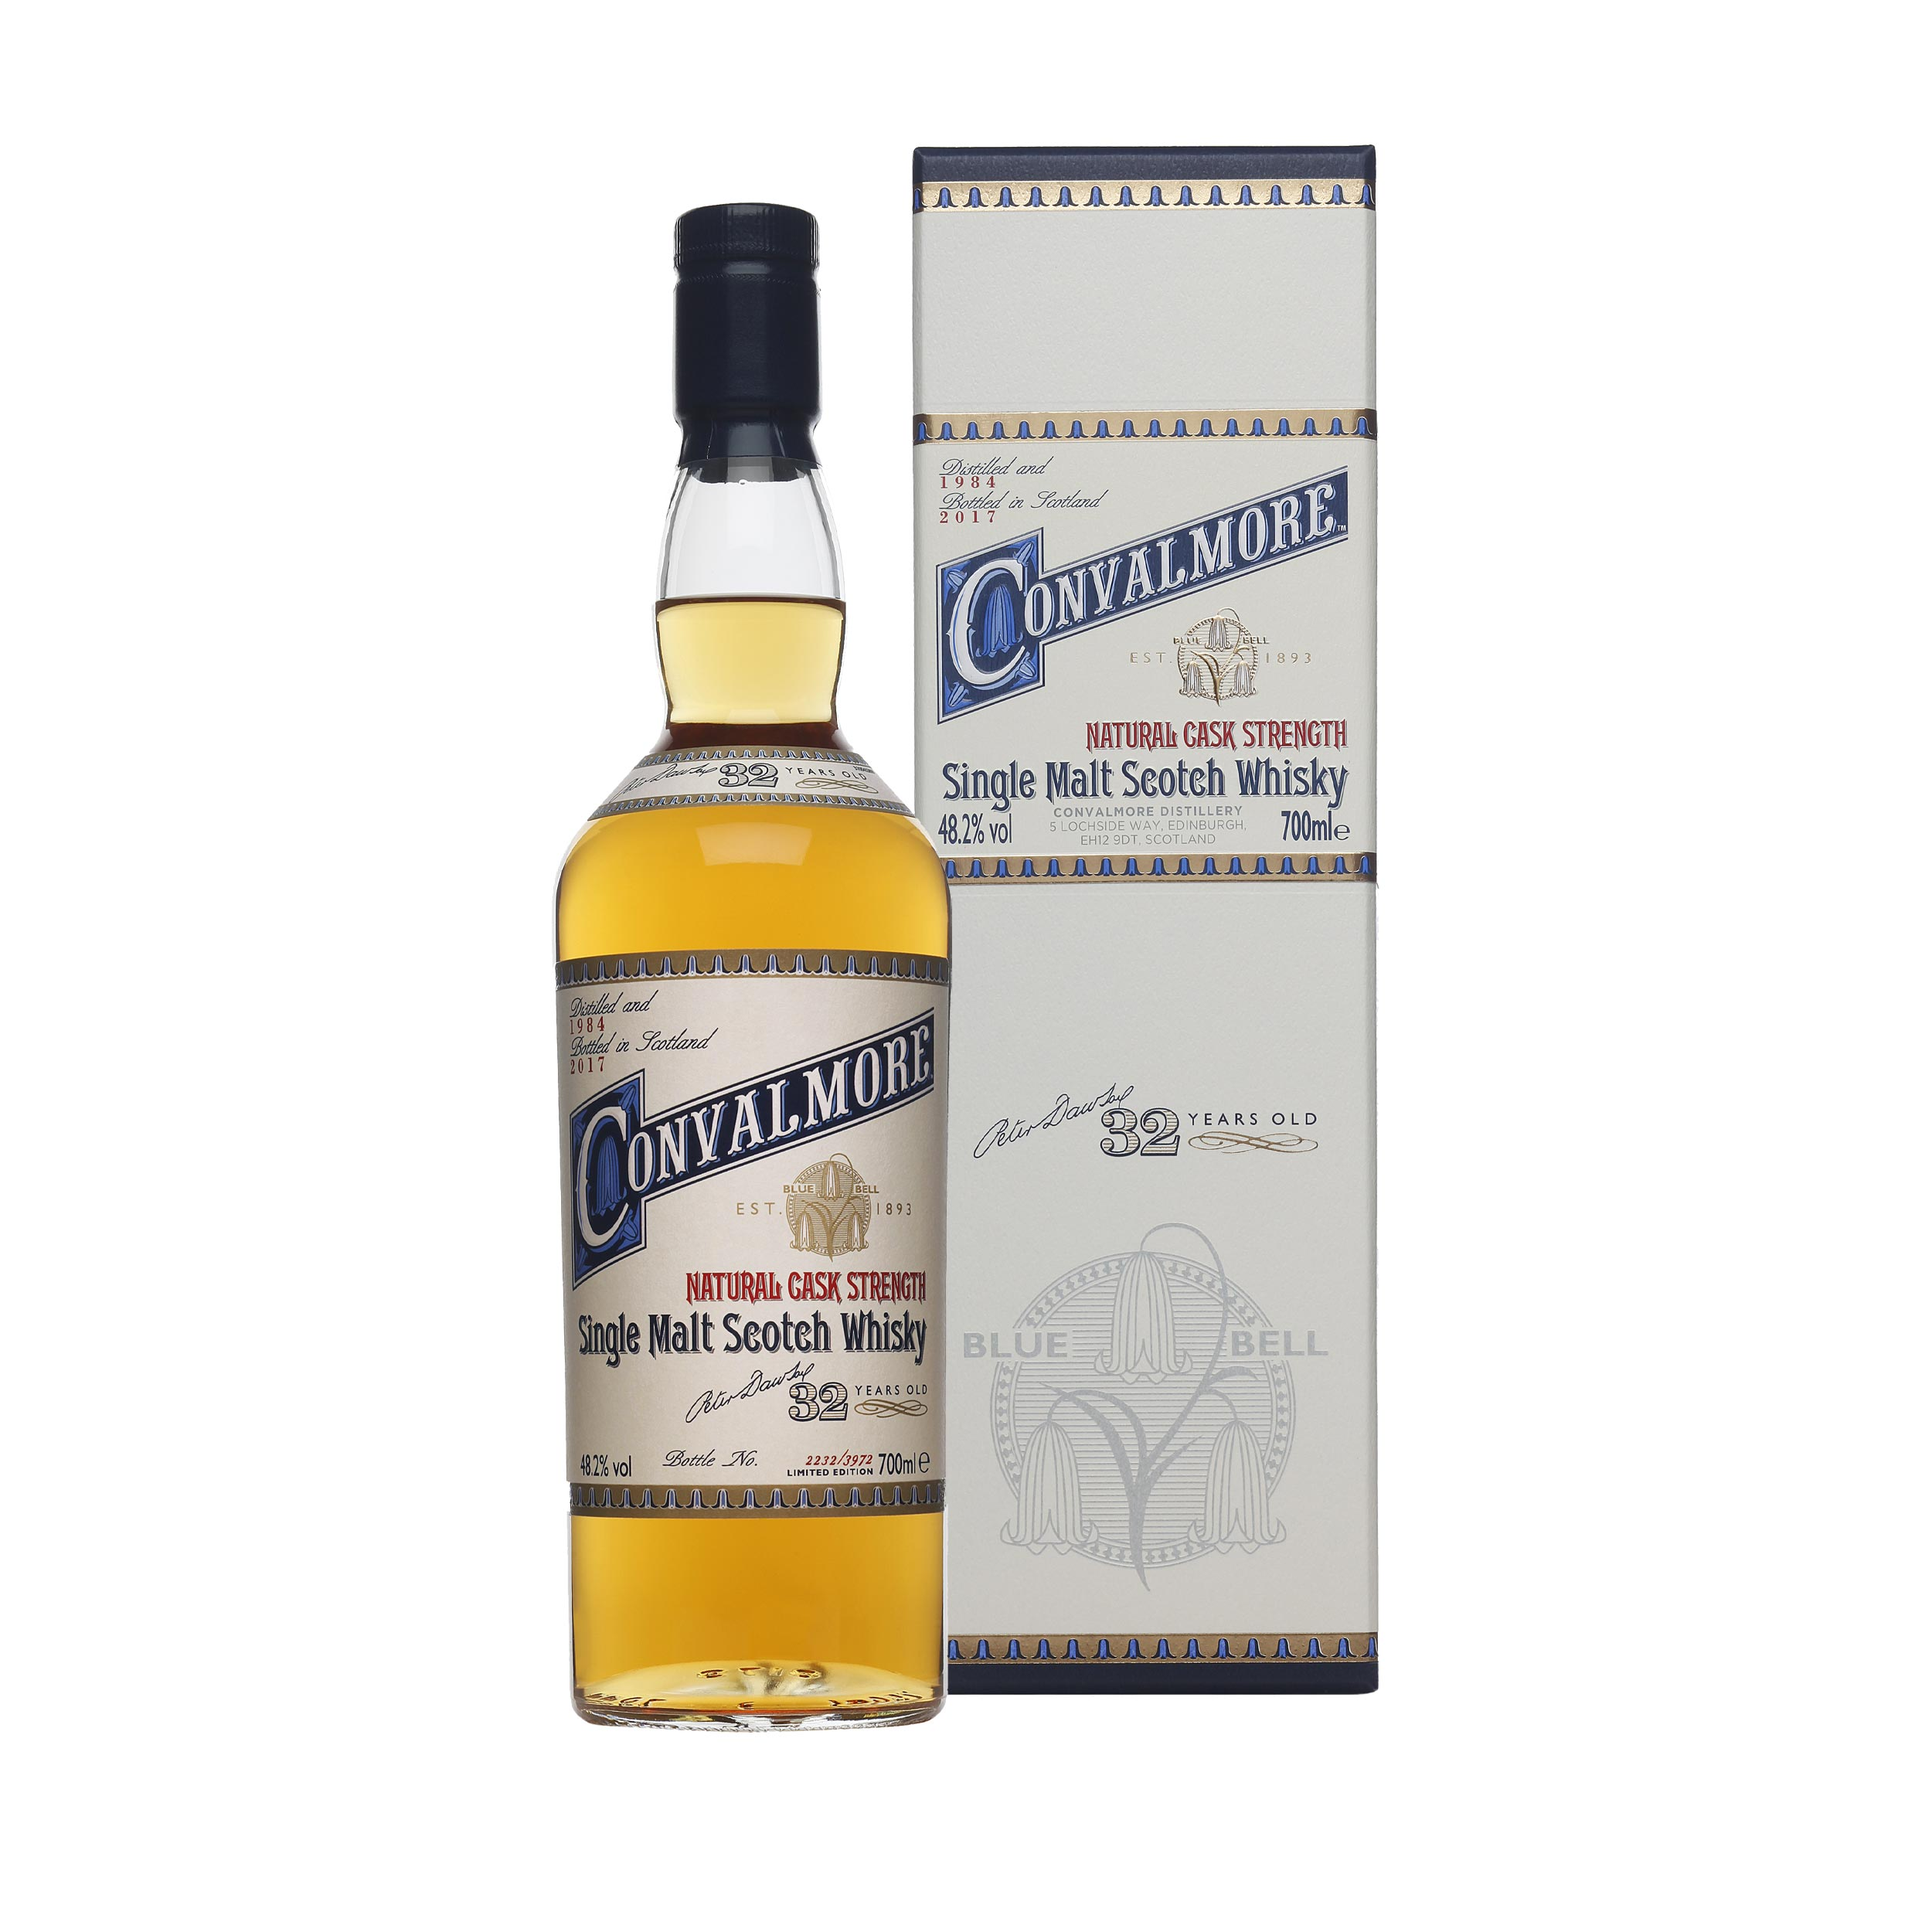 Convalmore 32 Year Old 2017 Special Release Limited Edition Speyside Single Malt Scotch Whisky 70cl